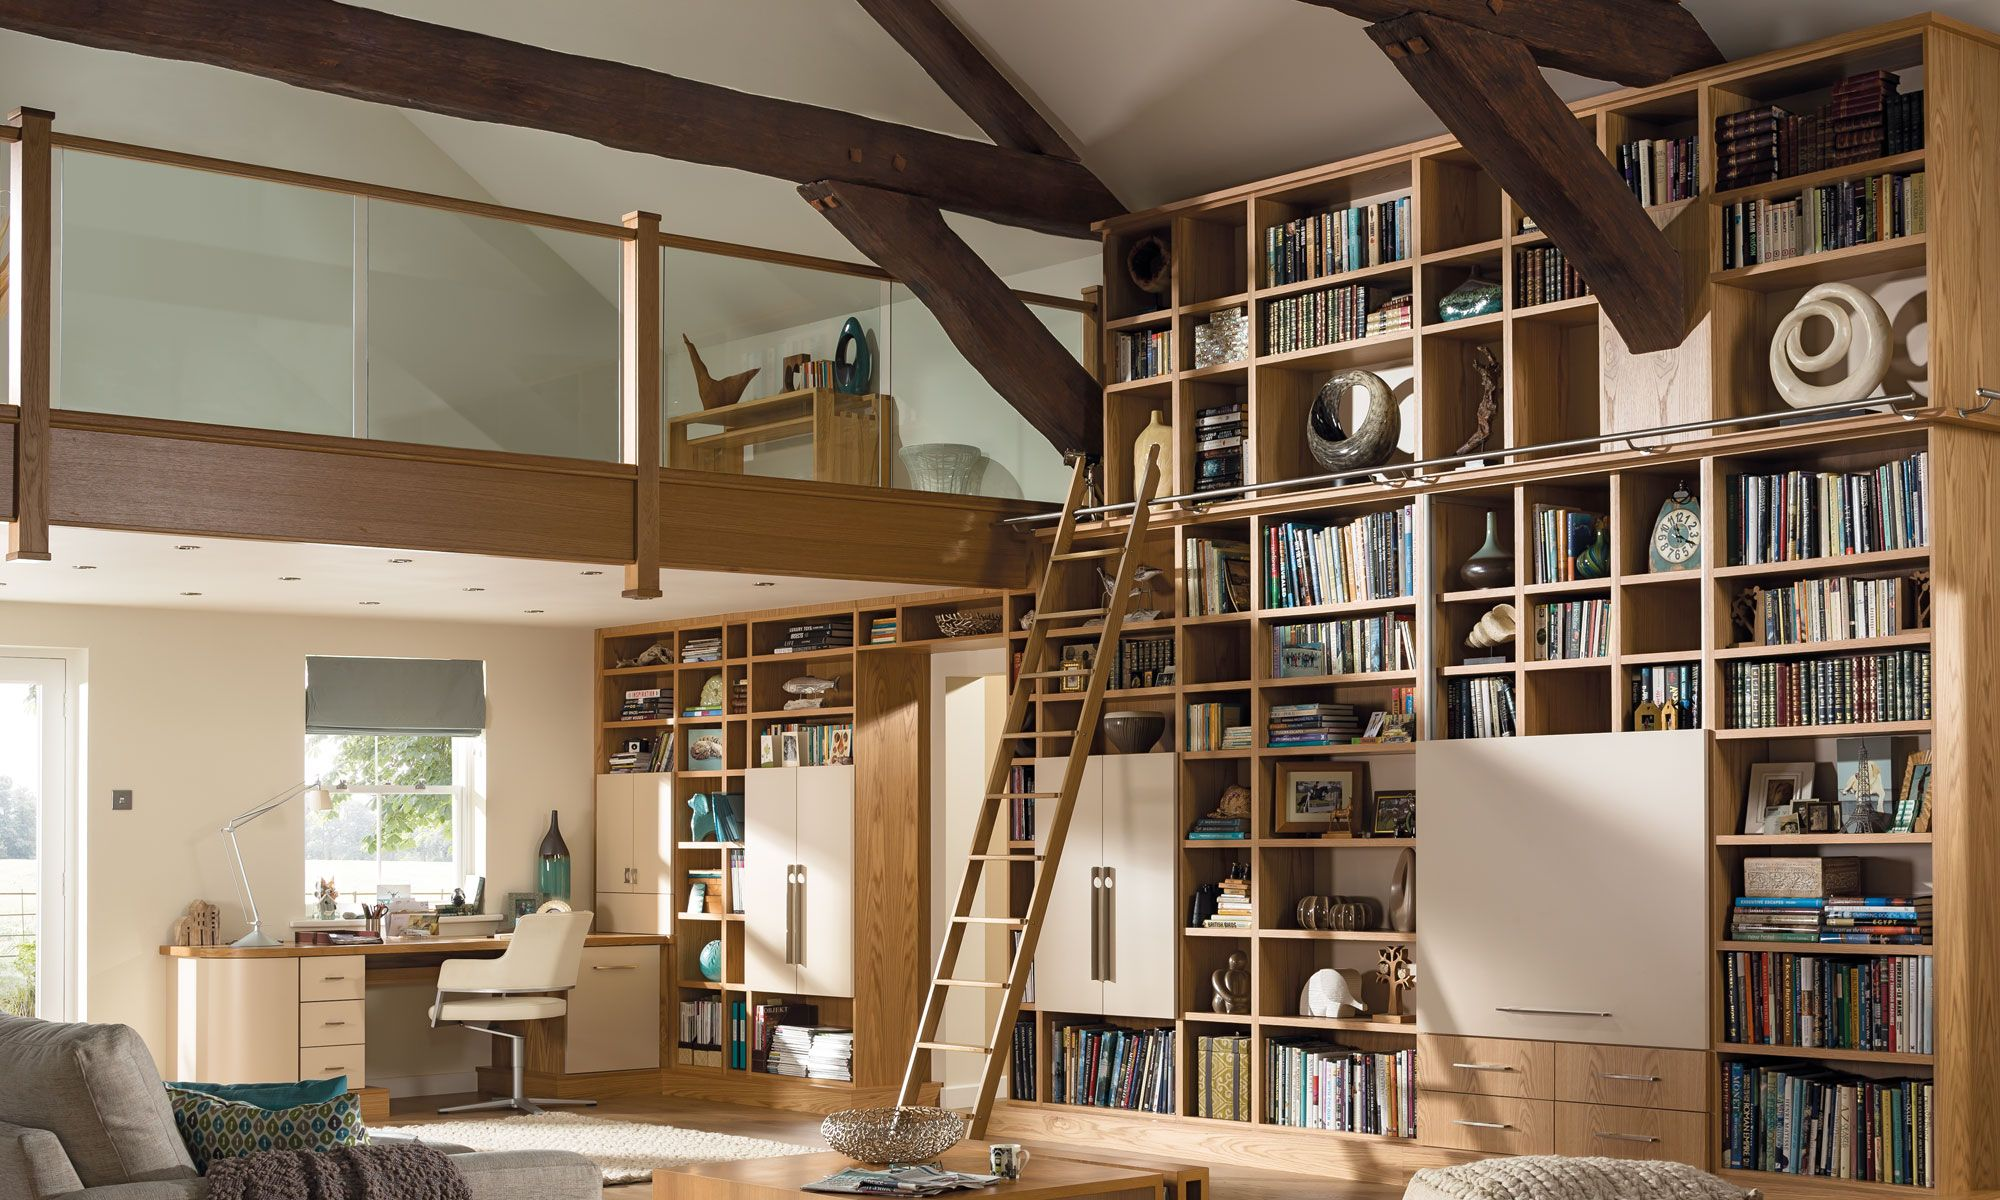 Modern Open Plan Living Space With Library, Home Cinema And